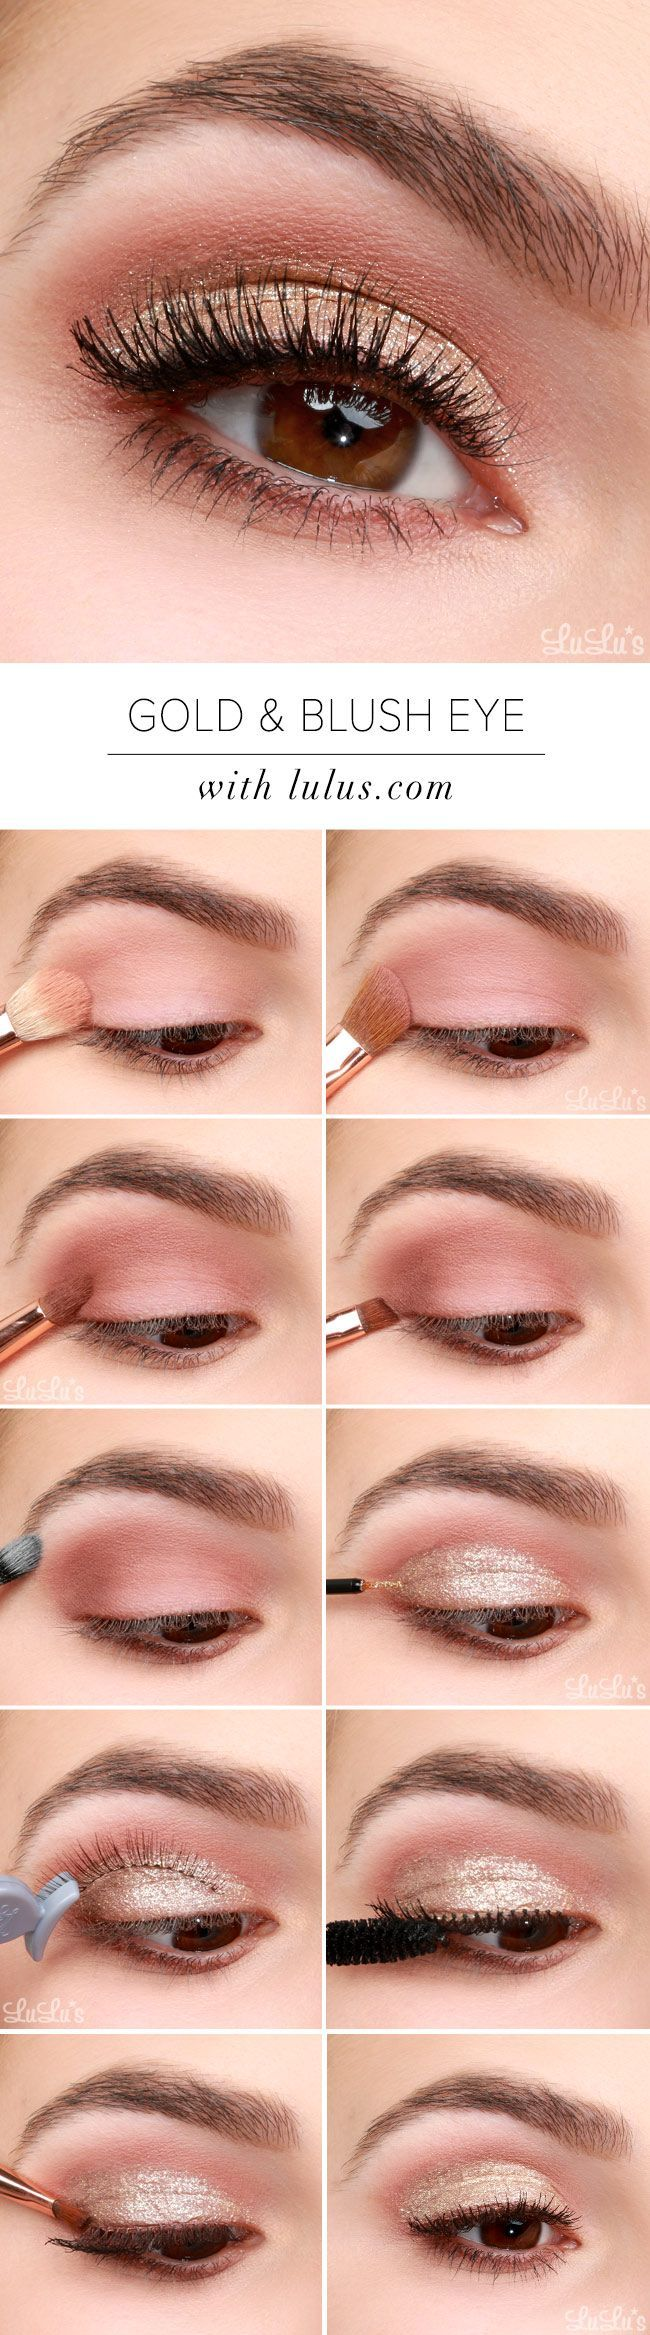 LuLu*s How-To: Gold and Blush Valentine's Day Eye Makeup Tutorial at LuLus.com!